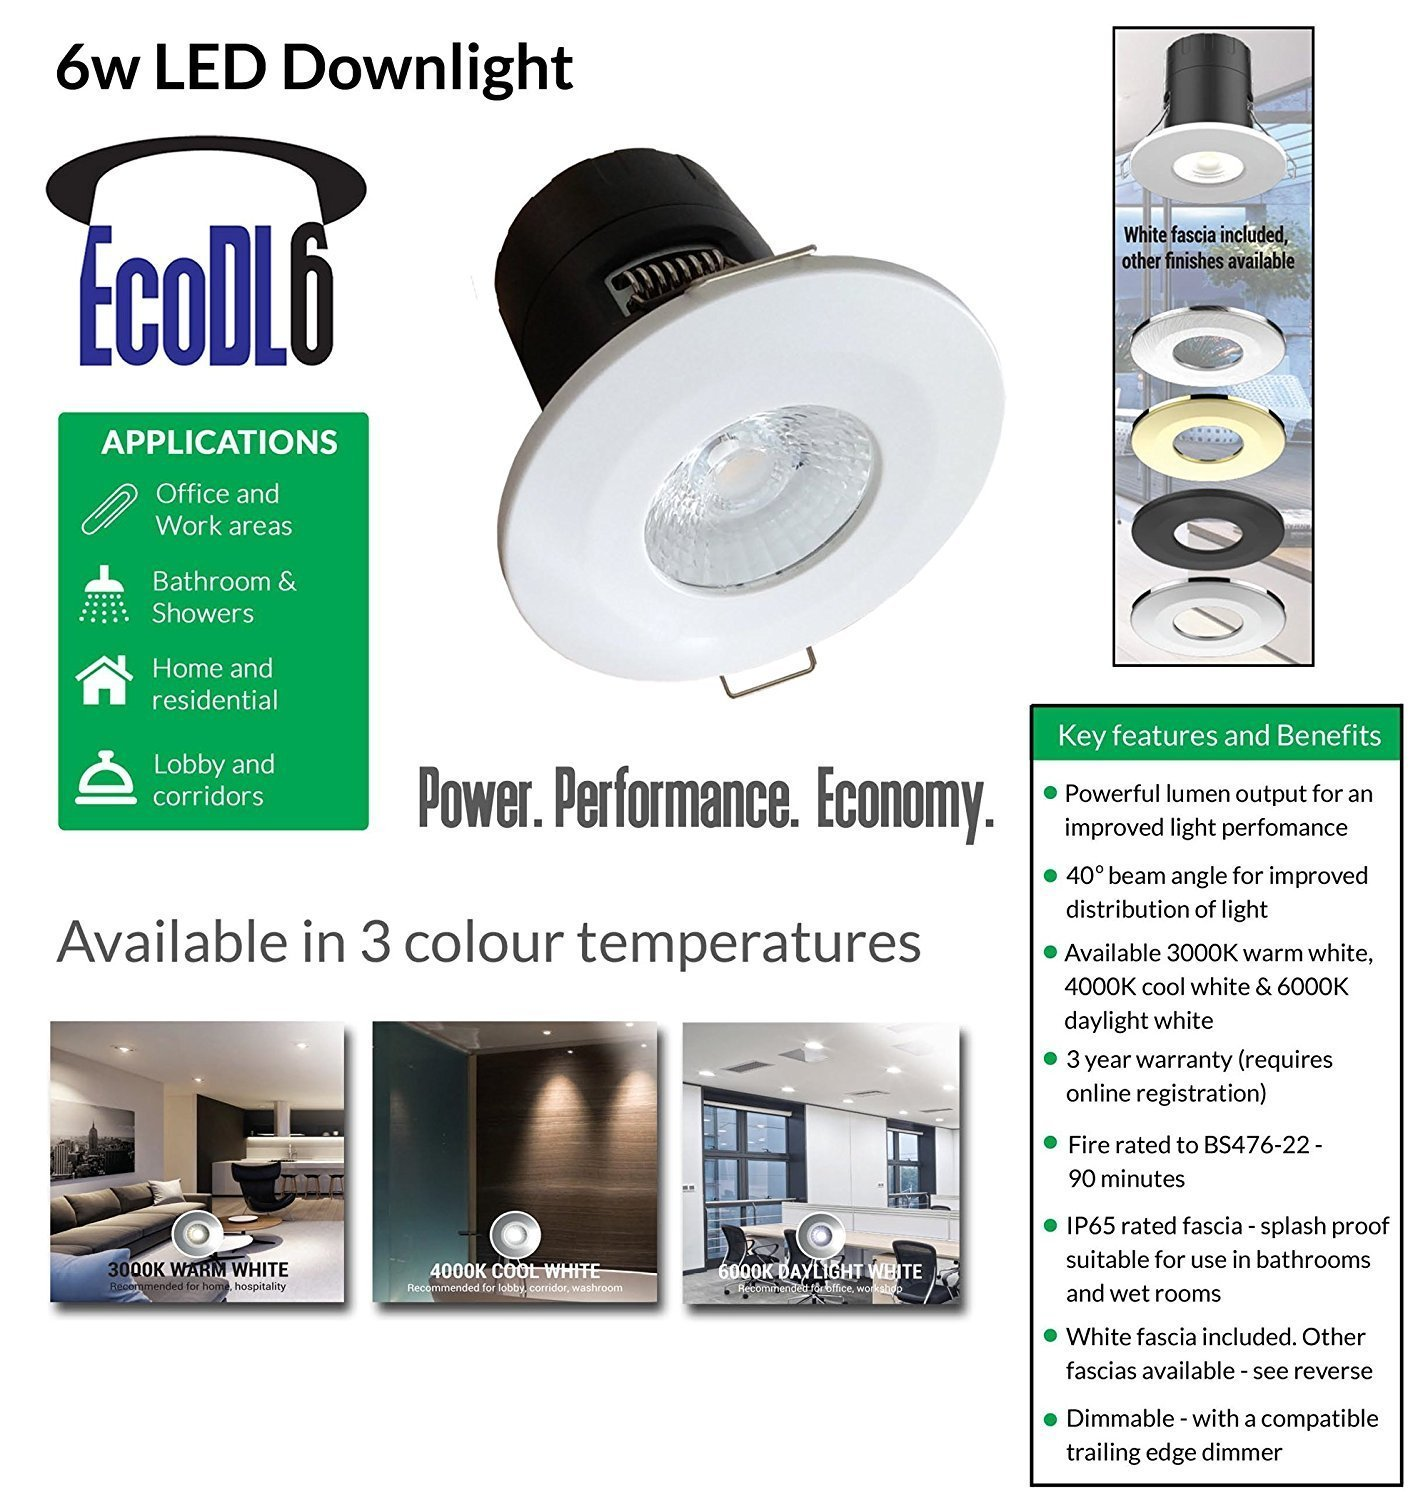 6 x 240v Brite Source ECODL6 LED Downlight. 560 Lumen output. 3000k Warm white colour. 40 Degree beam angle. Dimmable. 55mm cutout. Water resistant. Brushed Steel fascia. by Brite Source (Image #3)